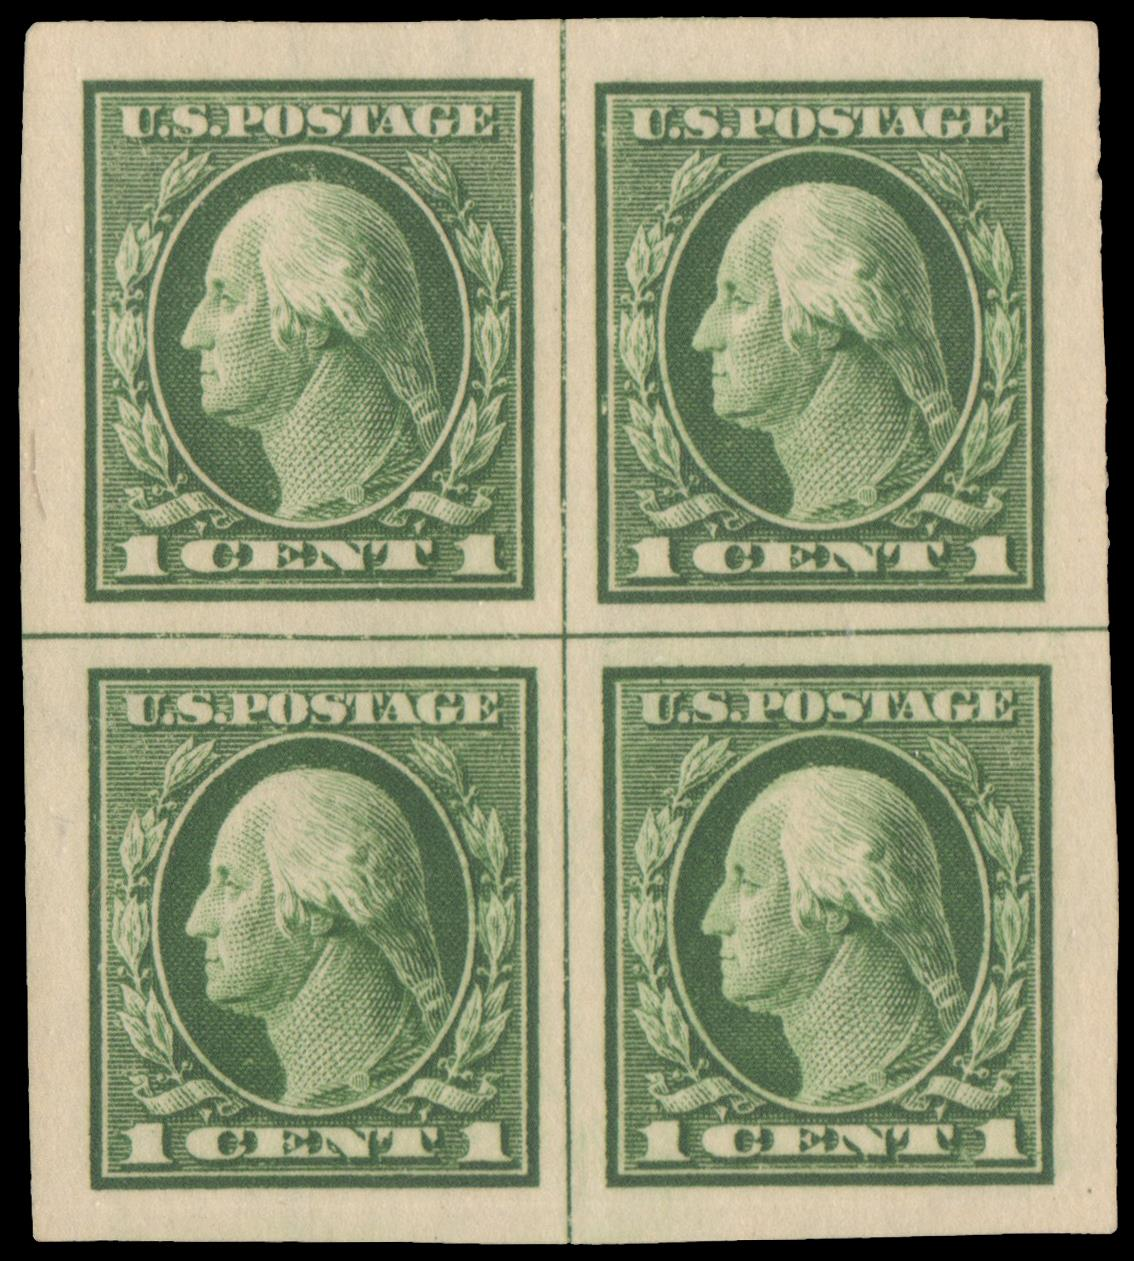 #408 MNH CLB PSE Graded 98, Certificate # 01340169